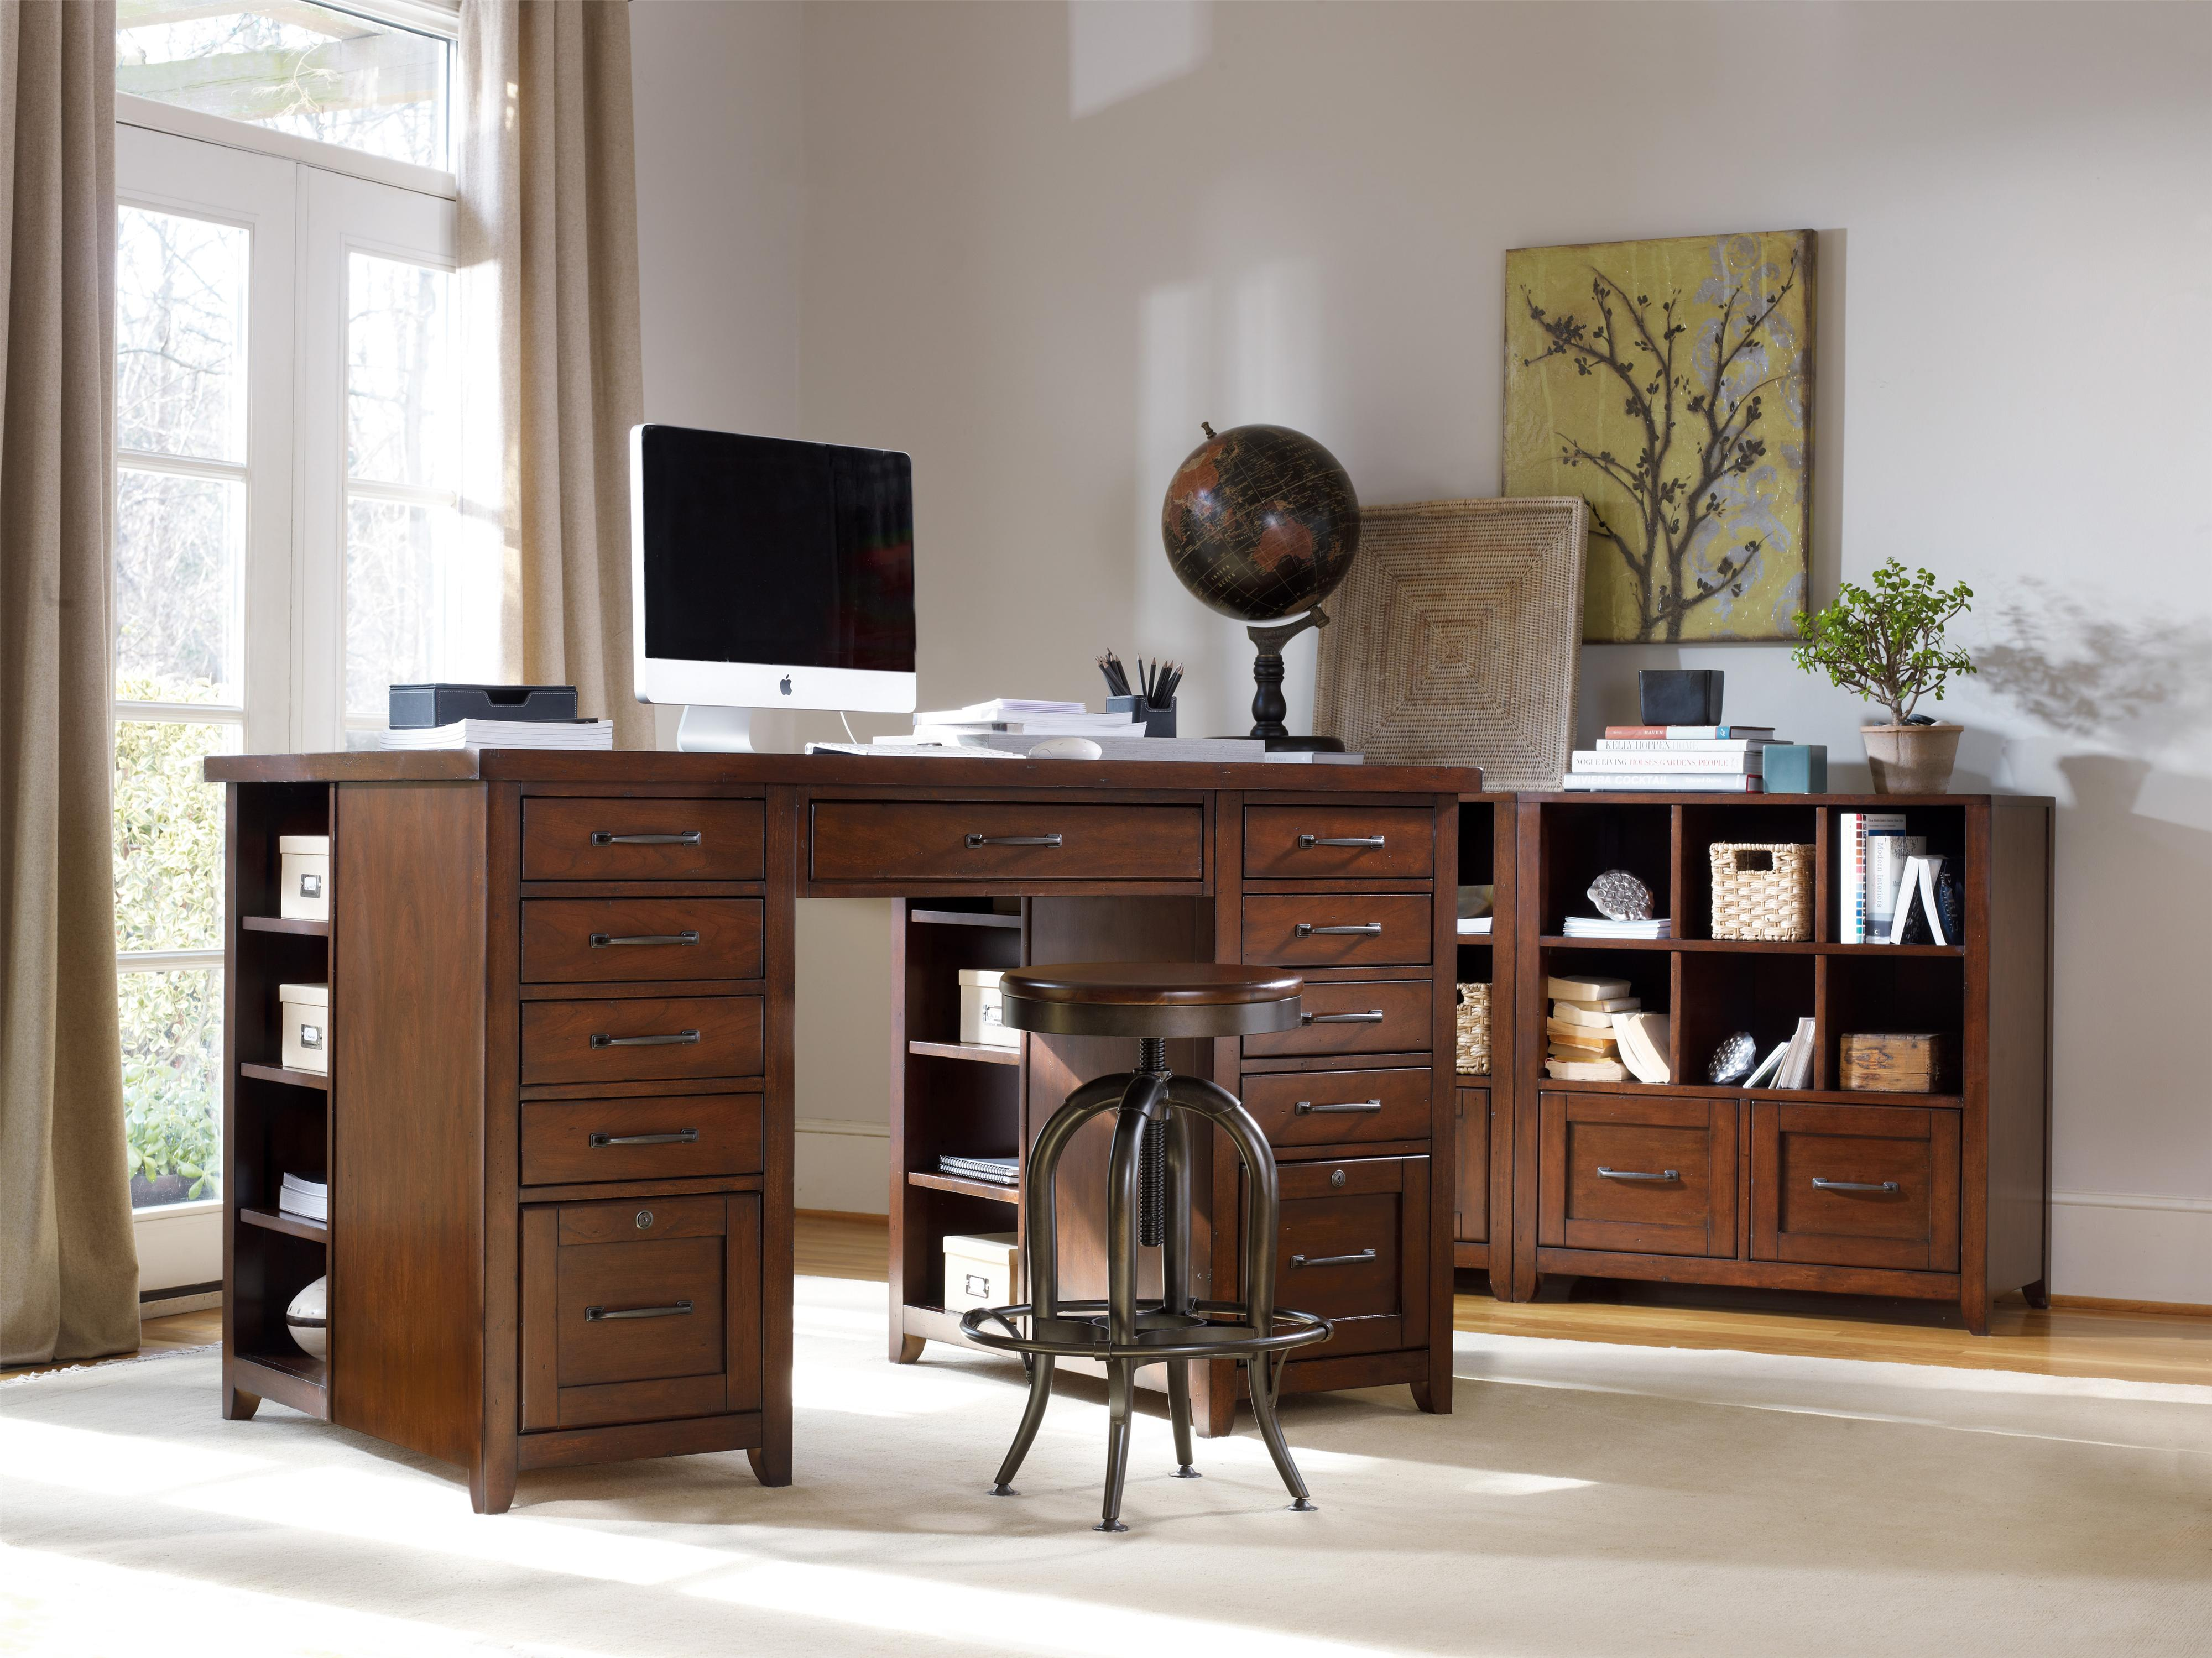 Hooker Furniture Wendover Basic Leg Desk With Drop Front Keyboard Drawer  And 2 Utility Drawers | Boulevard Home Furnishings | Table Desks/Writing  Desks